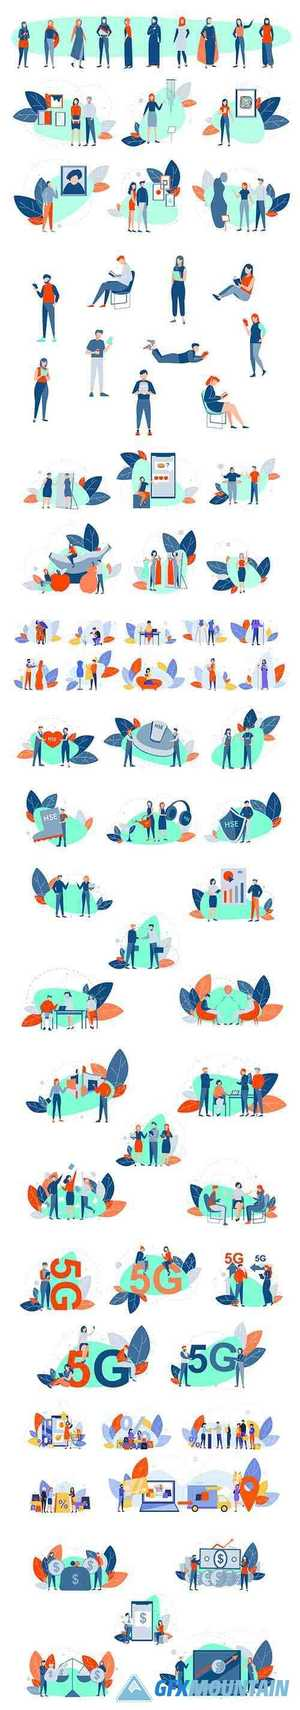 People Activities Concept Flat Illustration Set